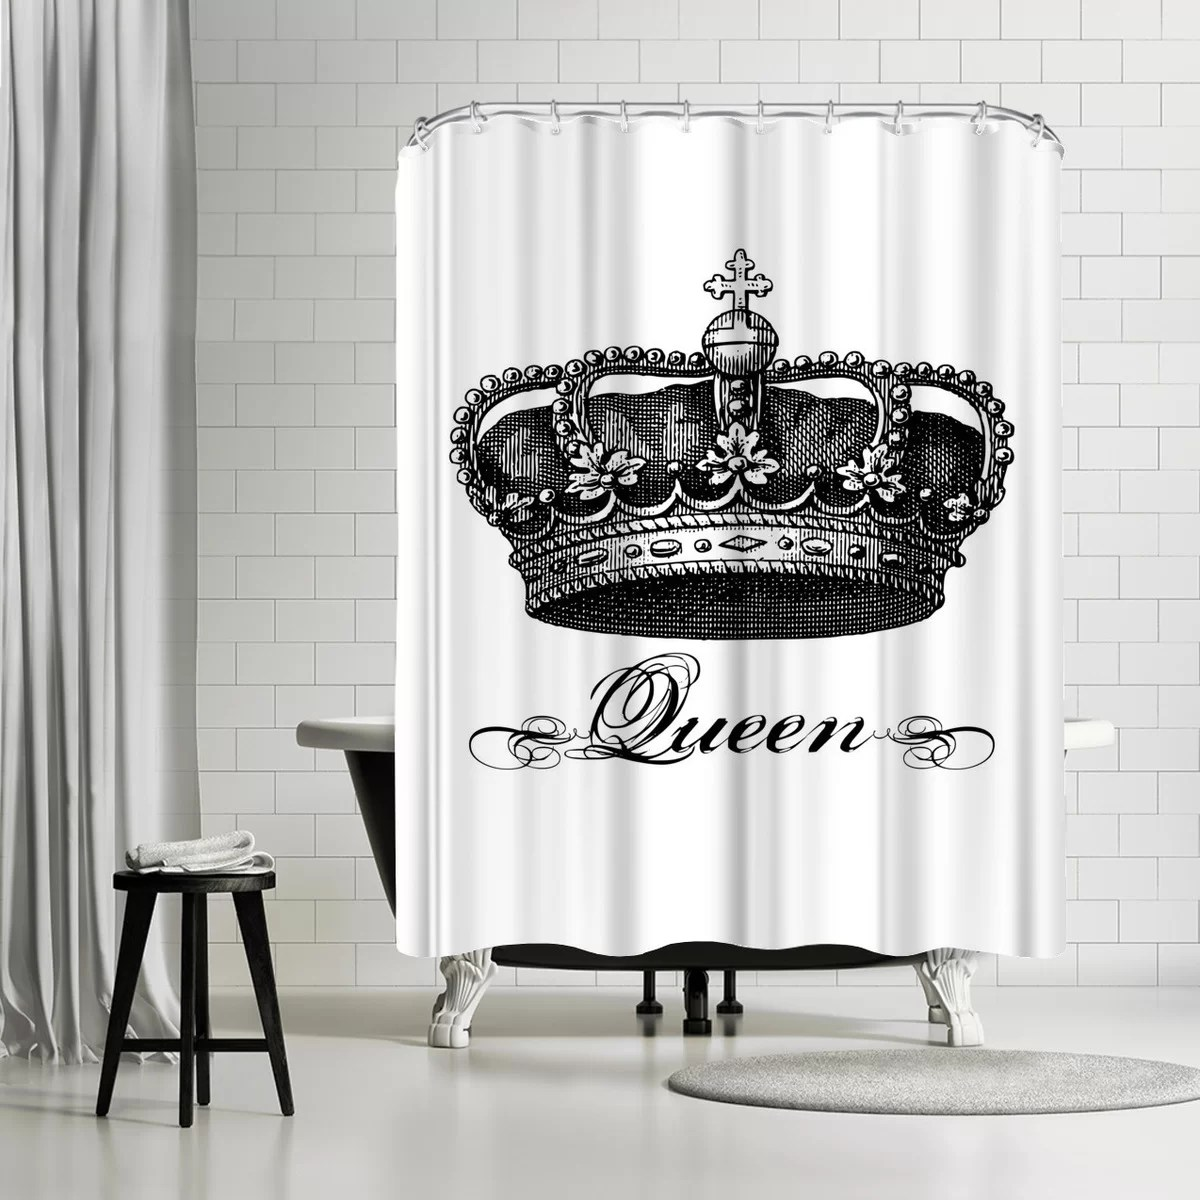 Black Queen Shower Curtain Details About East Urban Home Amy Brinkman Crown Queen Black Single Shower Curtain